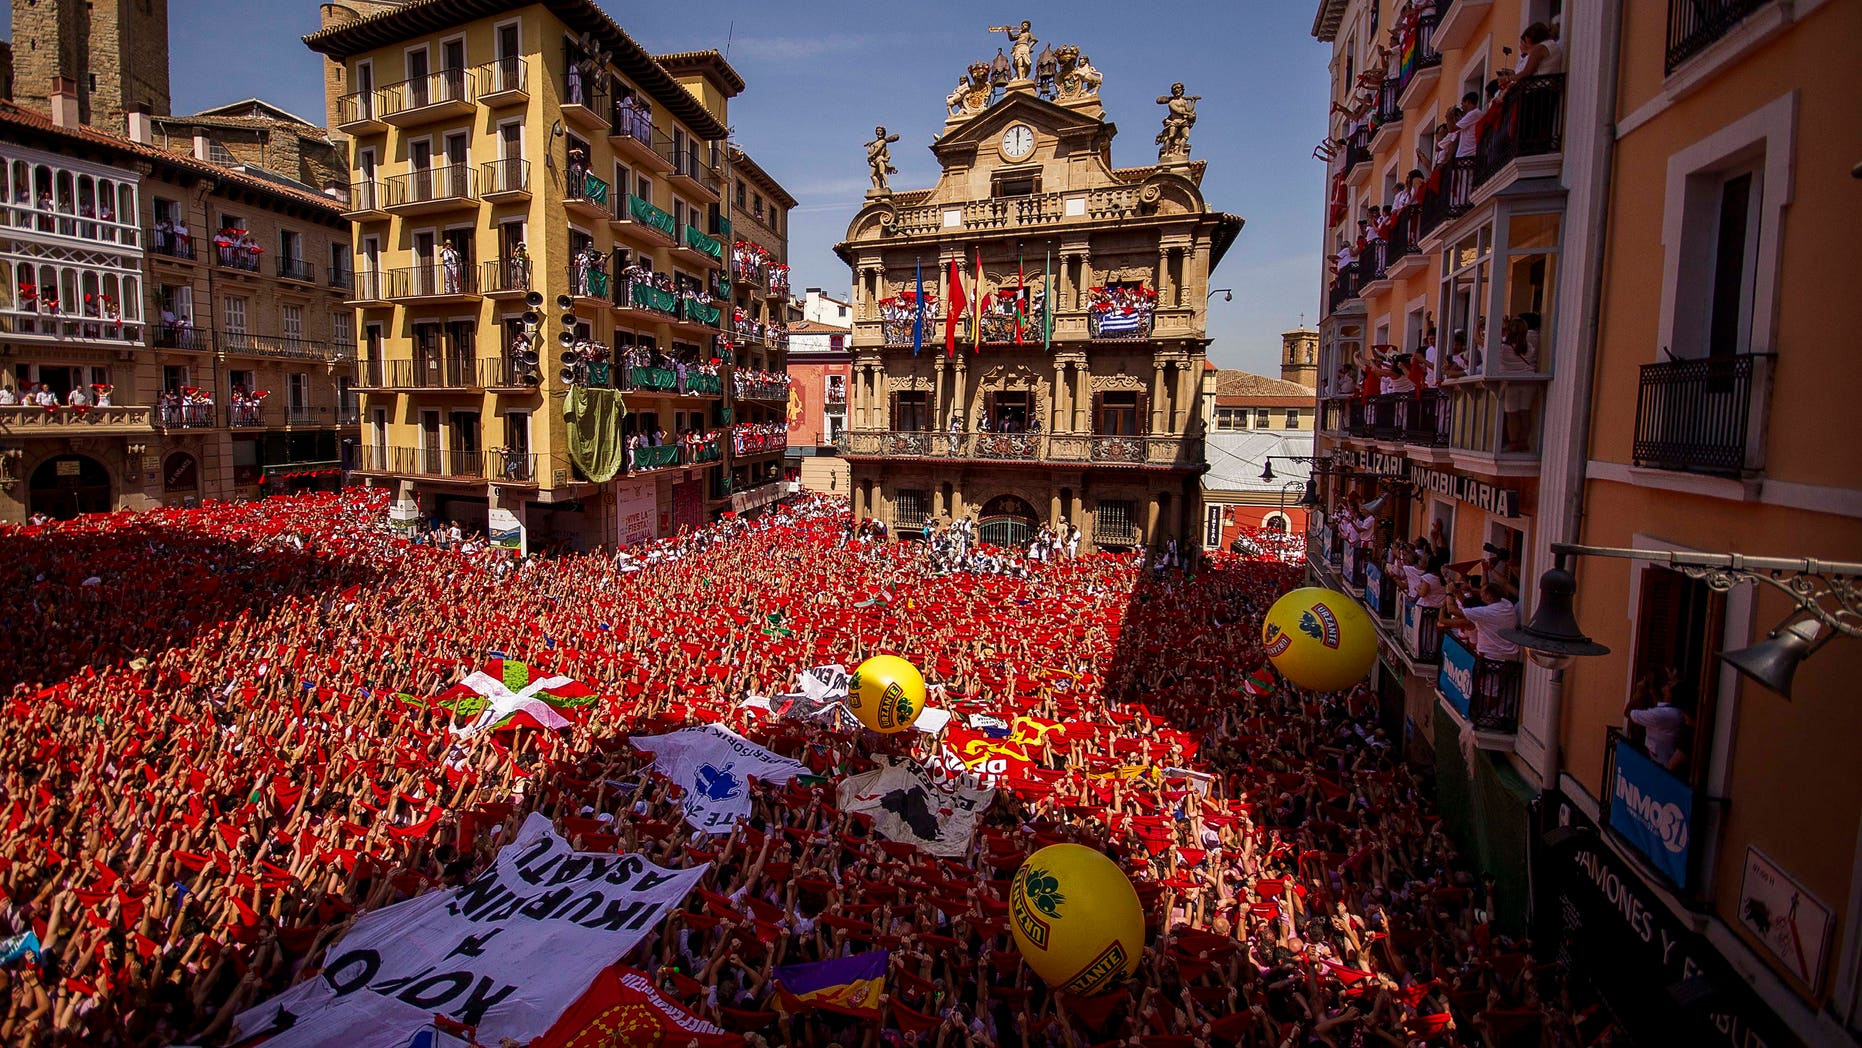 """Revelers hold up traditional red neckties during the launch of the """"Chupinazo"""" rocket, to celebrate the official opening of the 2015 San Fermin fiestas in Pamplona, Spain, Monday, July 6, 2015. Revelers from around the world turned out here to kick off the festival with a messy party in the Pamplona town square, one day before the first of eight days of the running of the bulls. (AP Photo/Andres Kudacki)"""